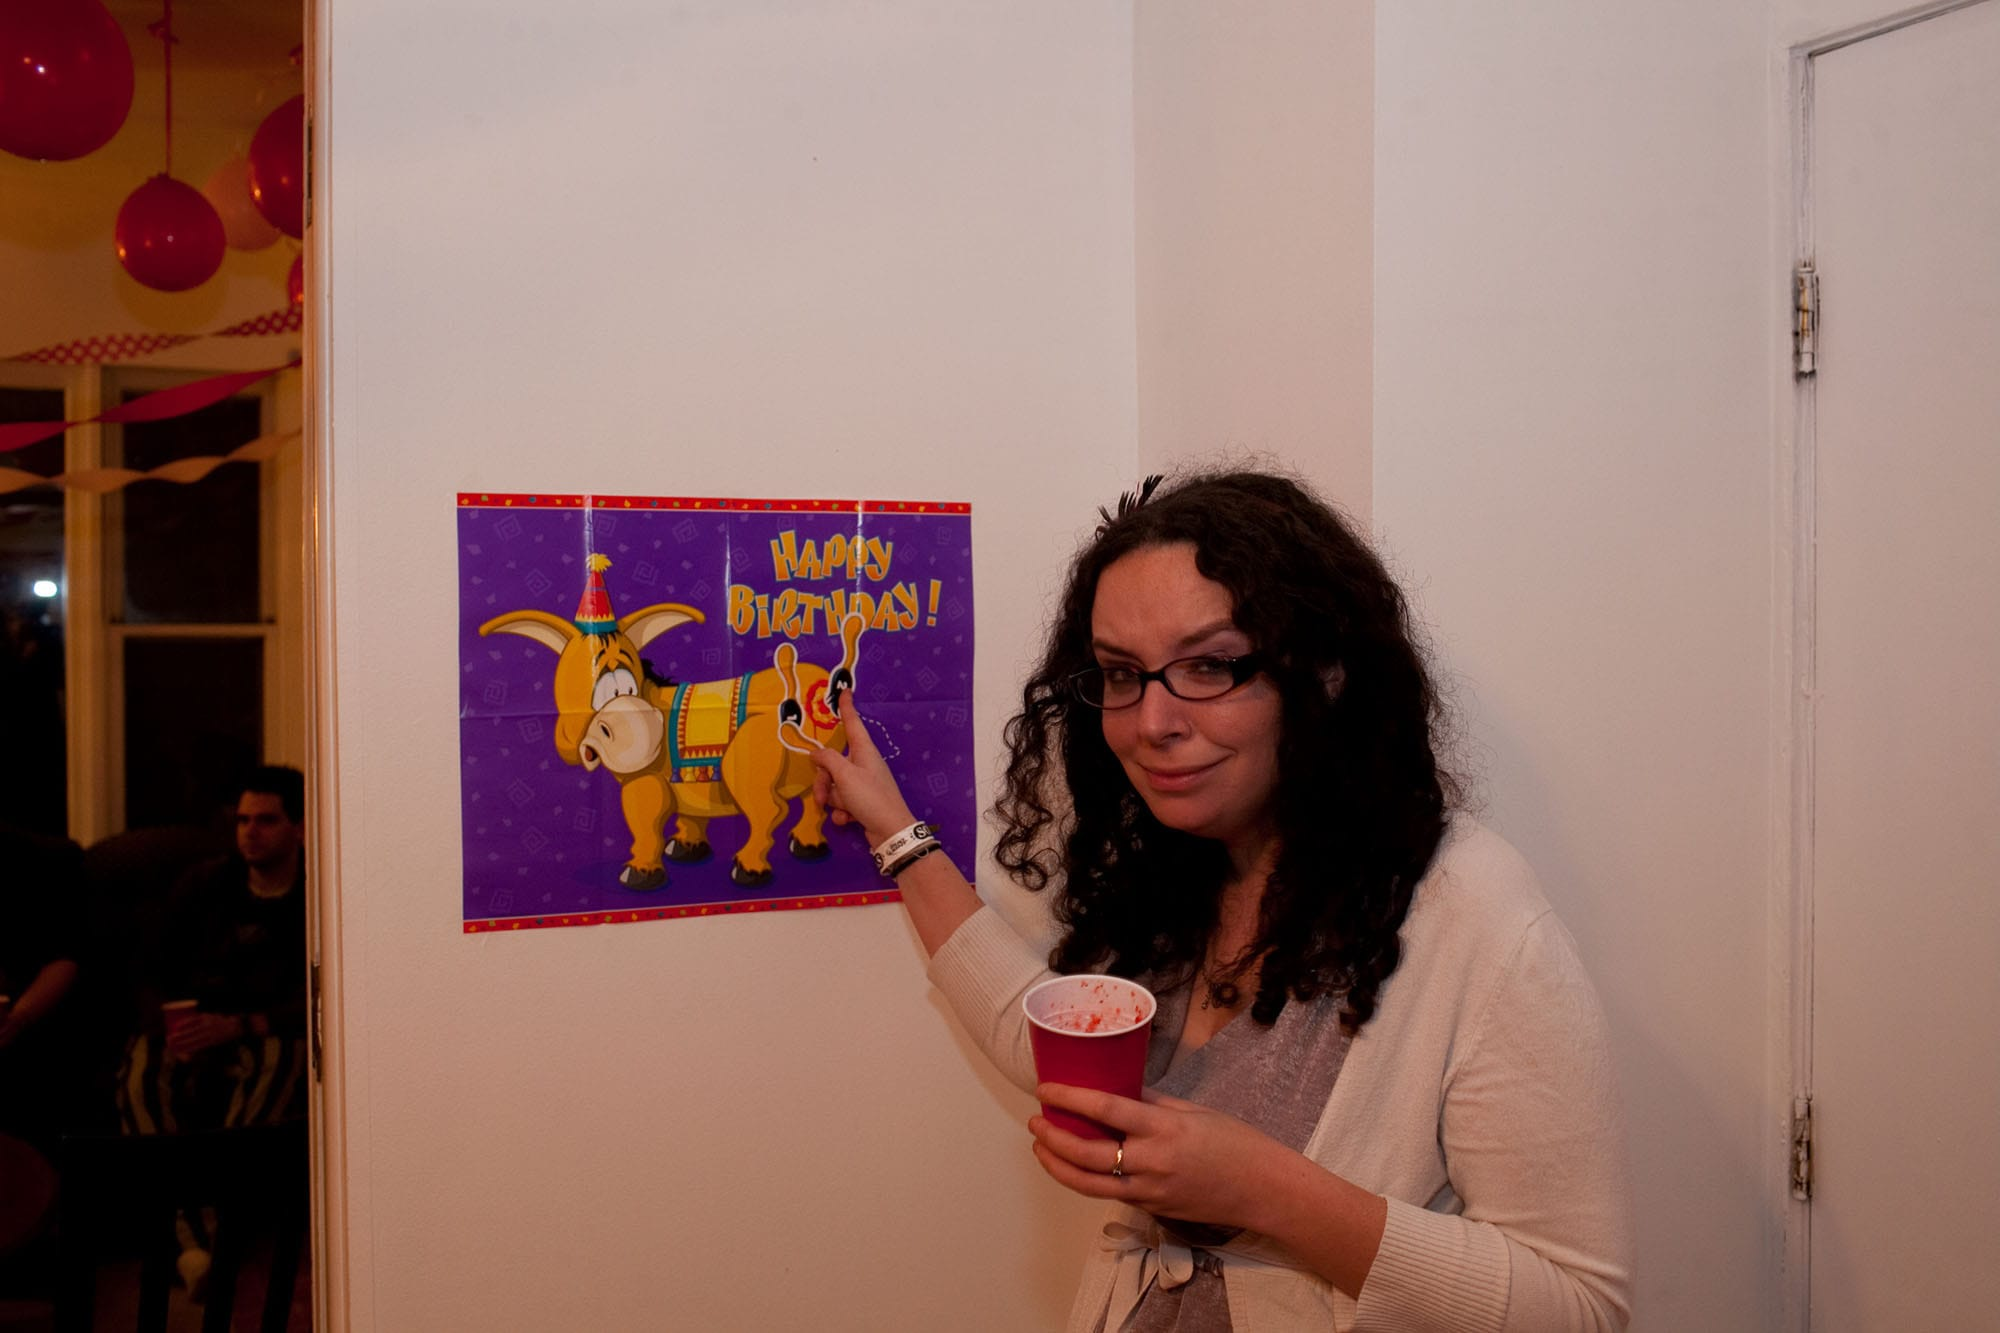 My thirtieth birthday party. Playing pin the tail on the donkey.